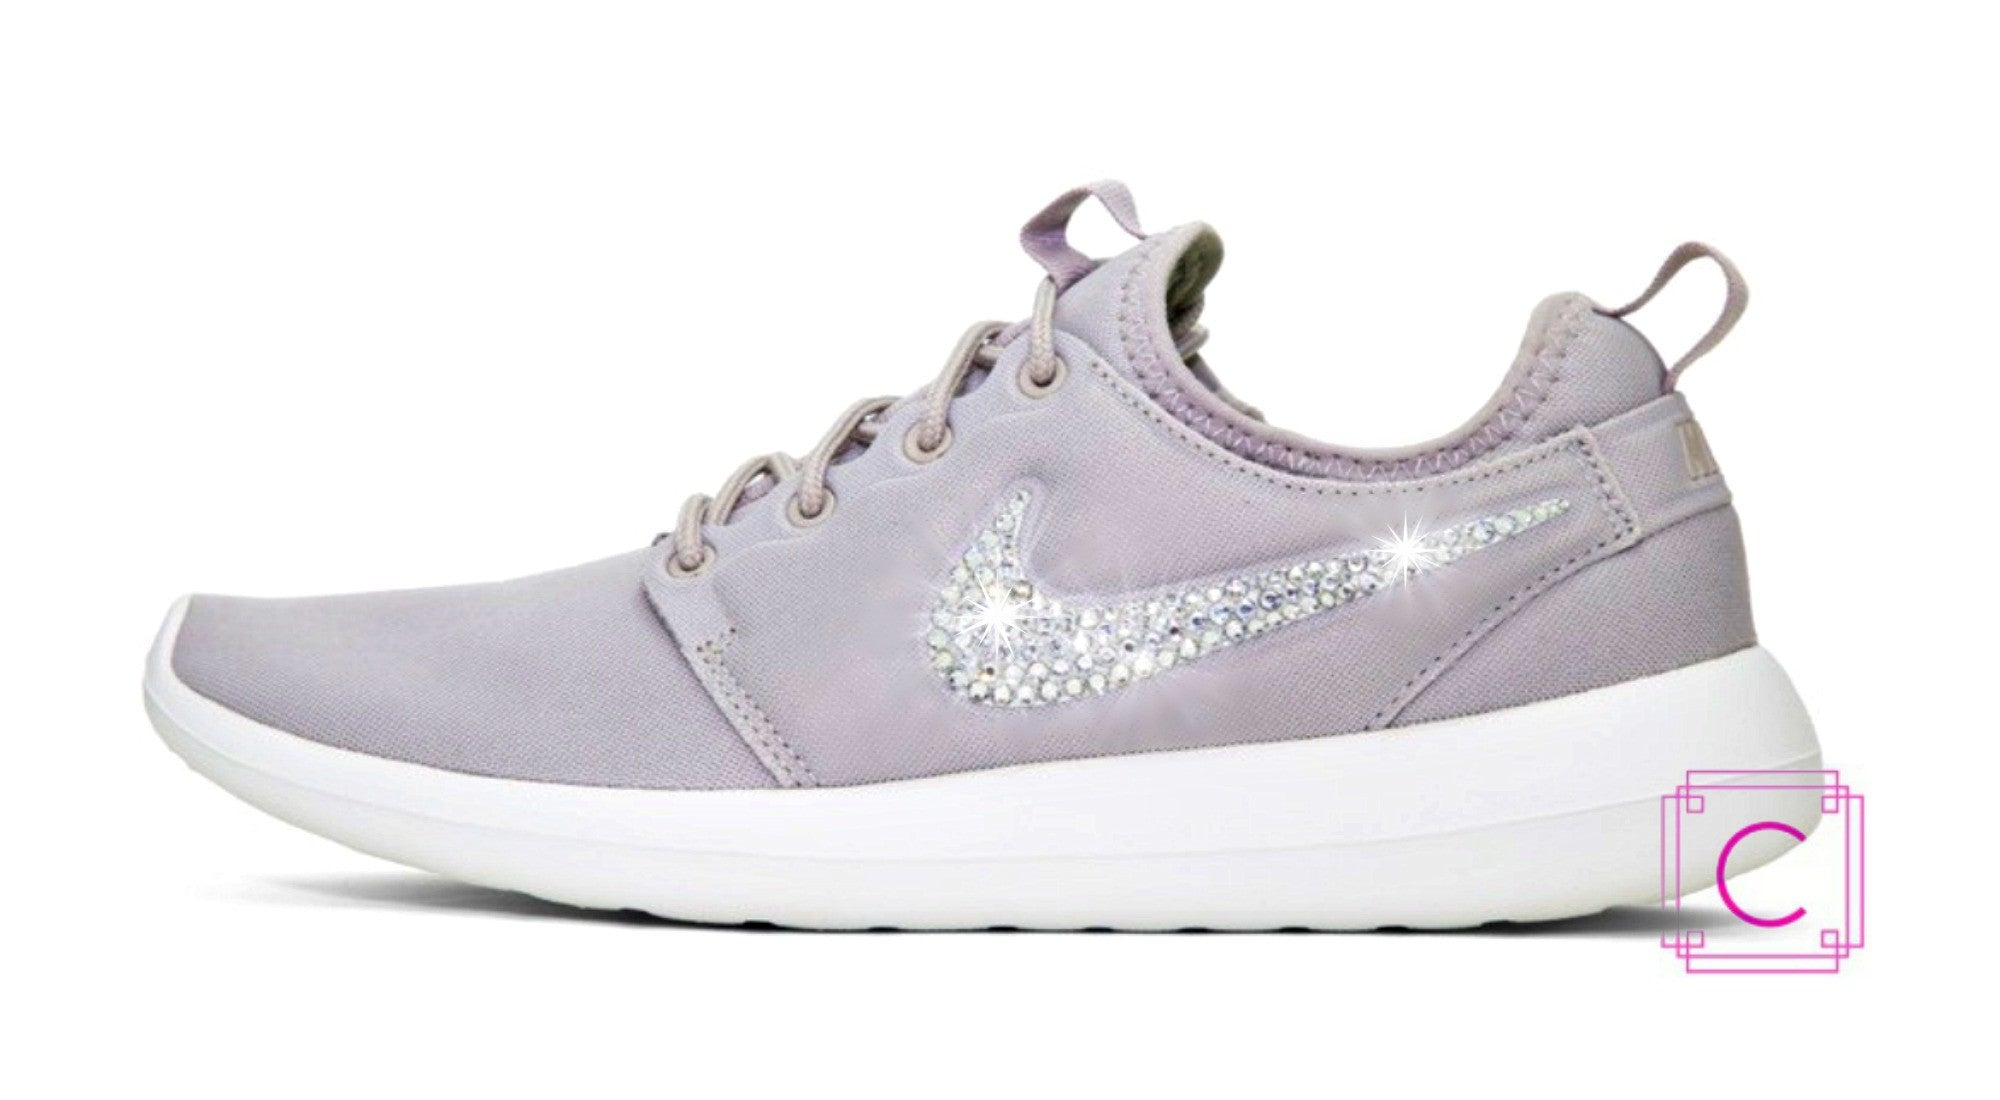 Women s Nike Roshe Two Premium in Wolf Grey w Swarovski Crystals details 05300822a